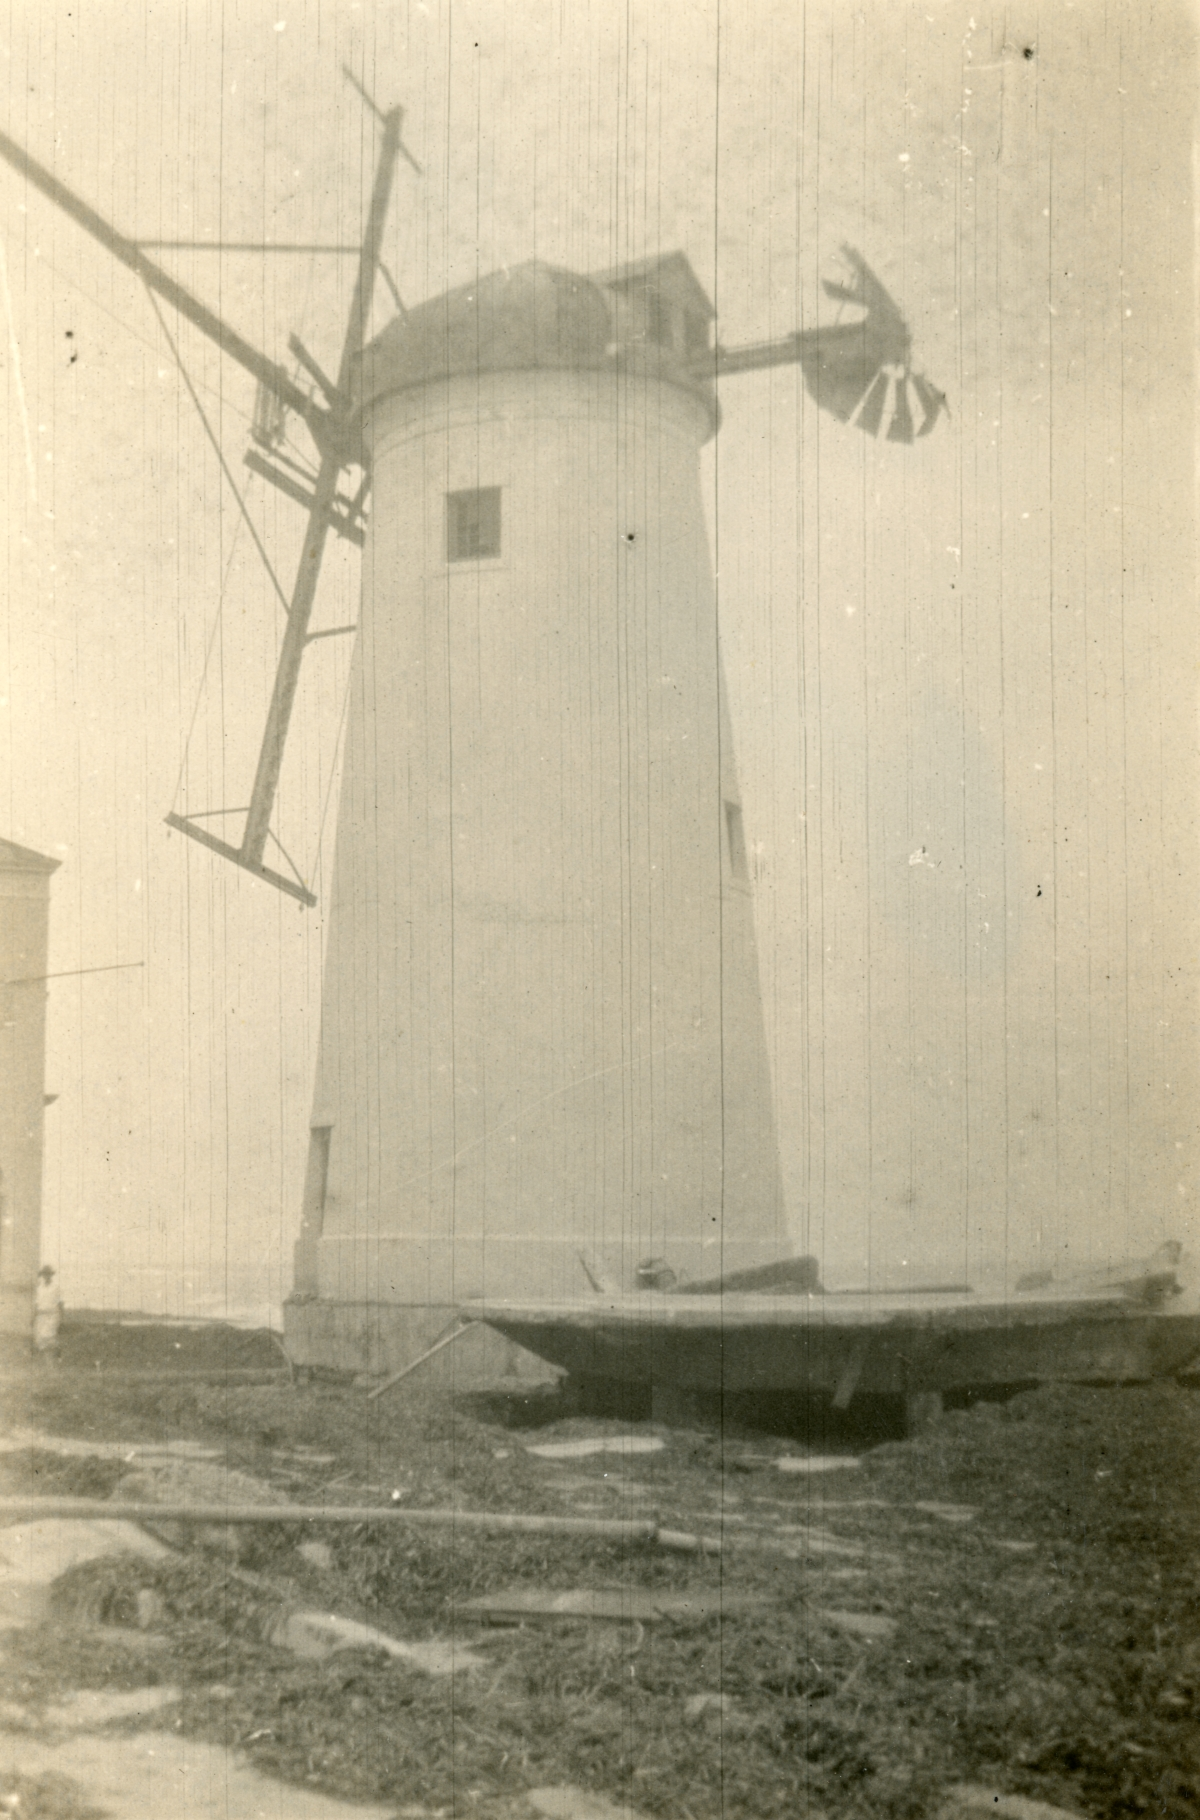 Damaged windmill at the Roman Pools casino shown following the 1926 hurricane in Miami Beach.